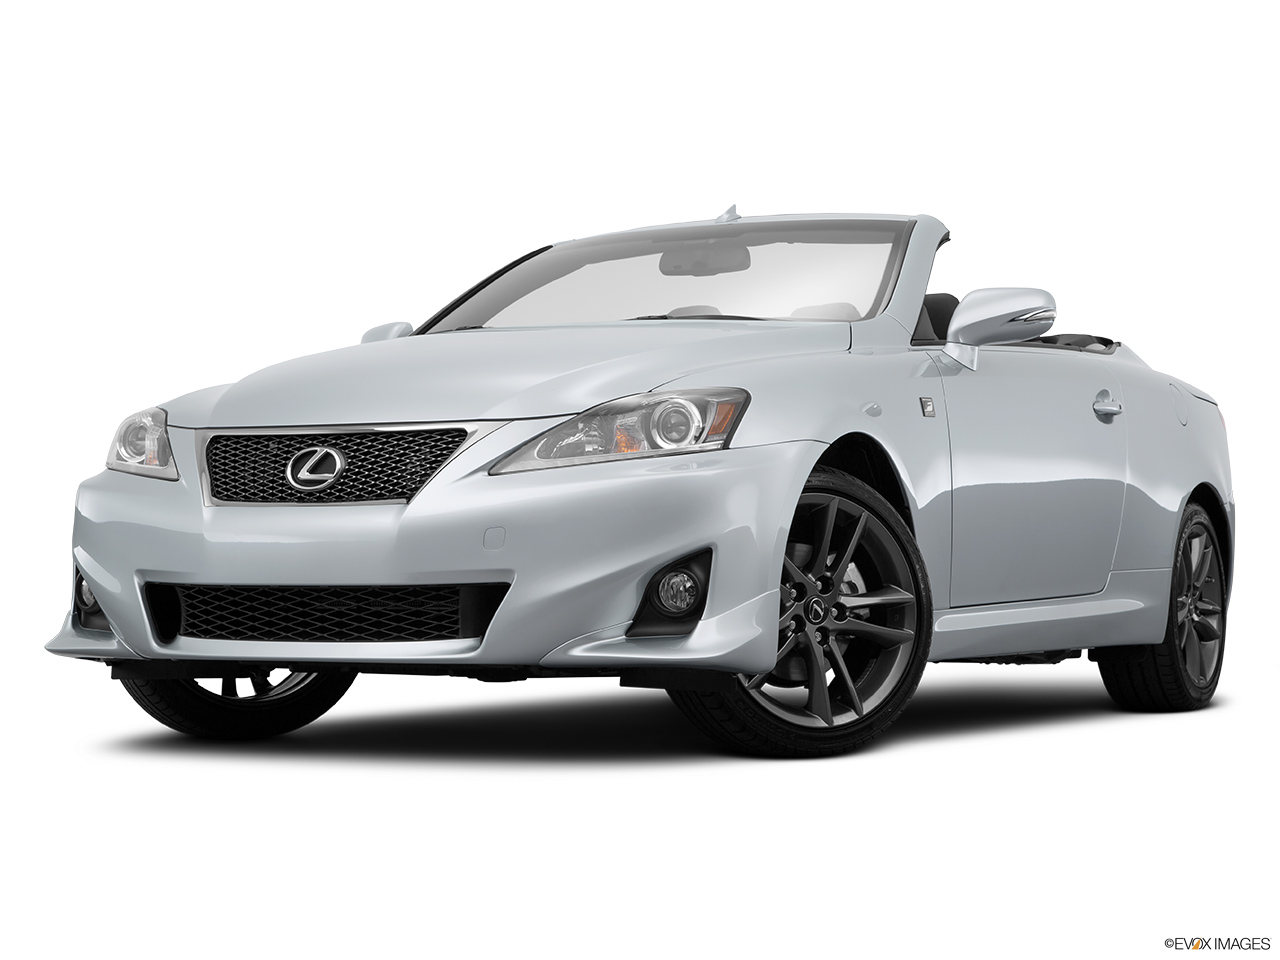 2015 Lexus IS C IS250 RWD Front angle view, low wide perspective.